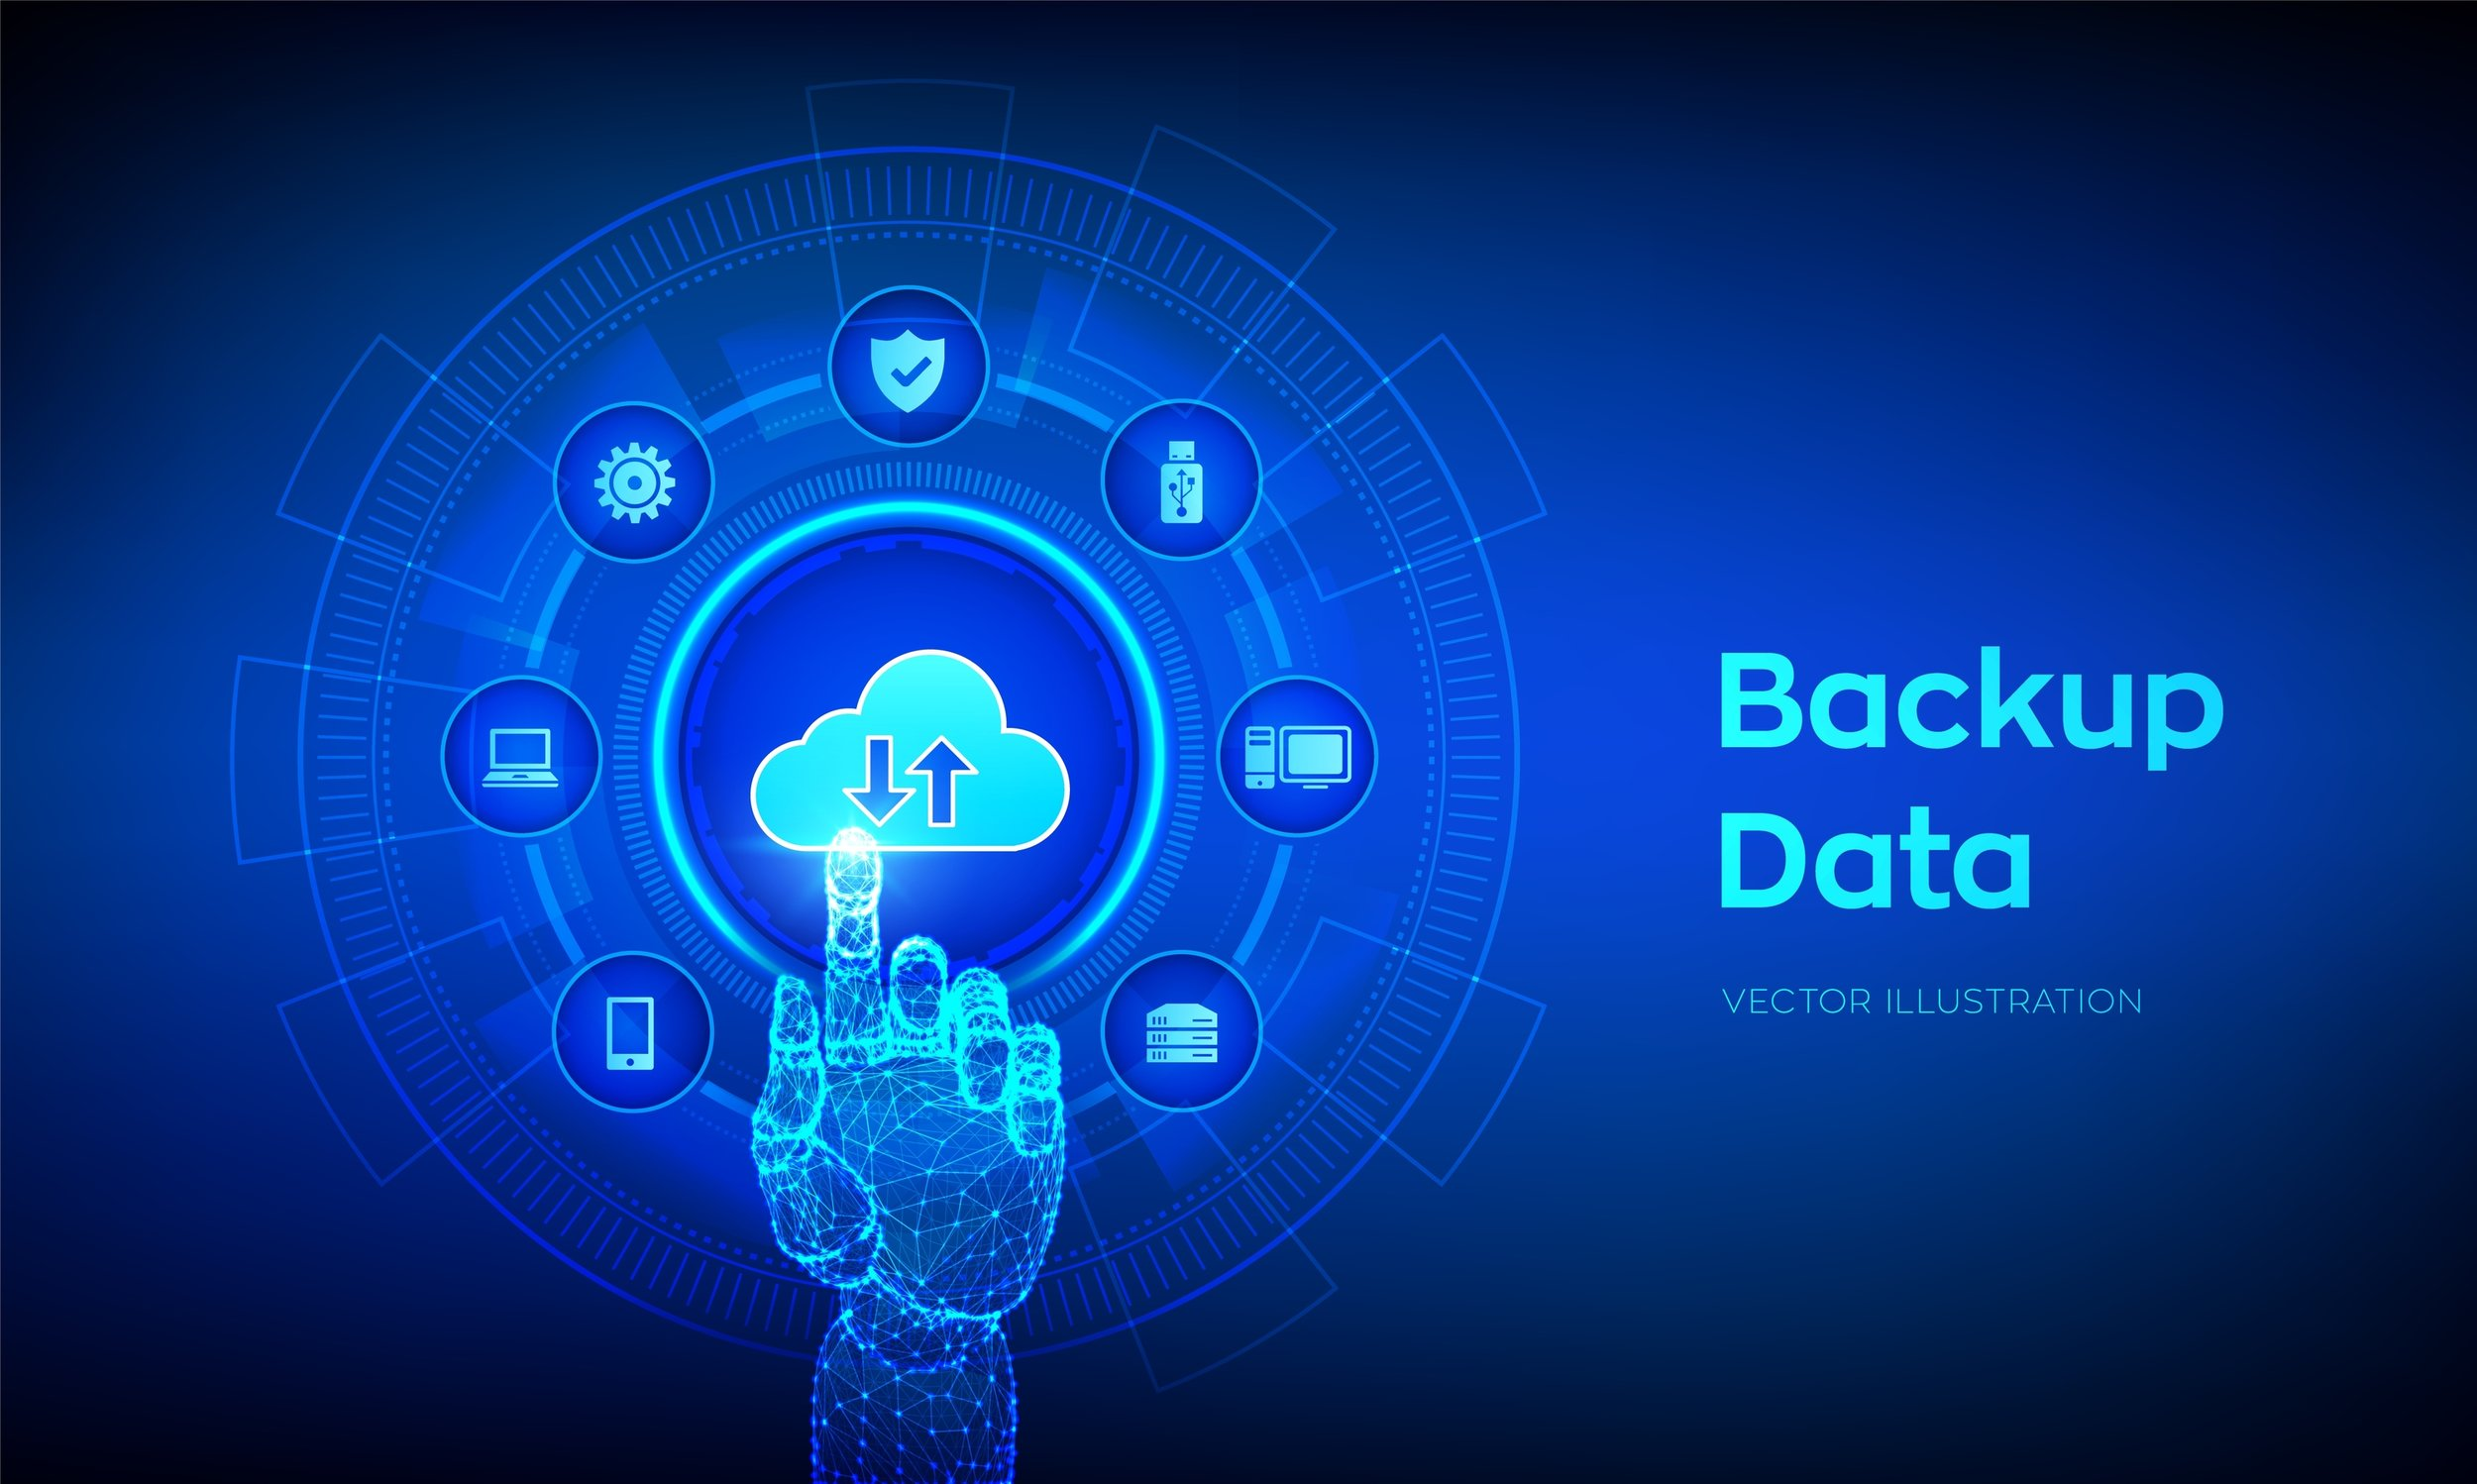 bigstock-Backup-Storage-Data-Business--319221211.jpg